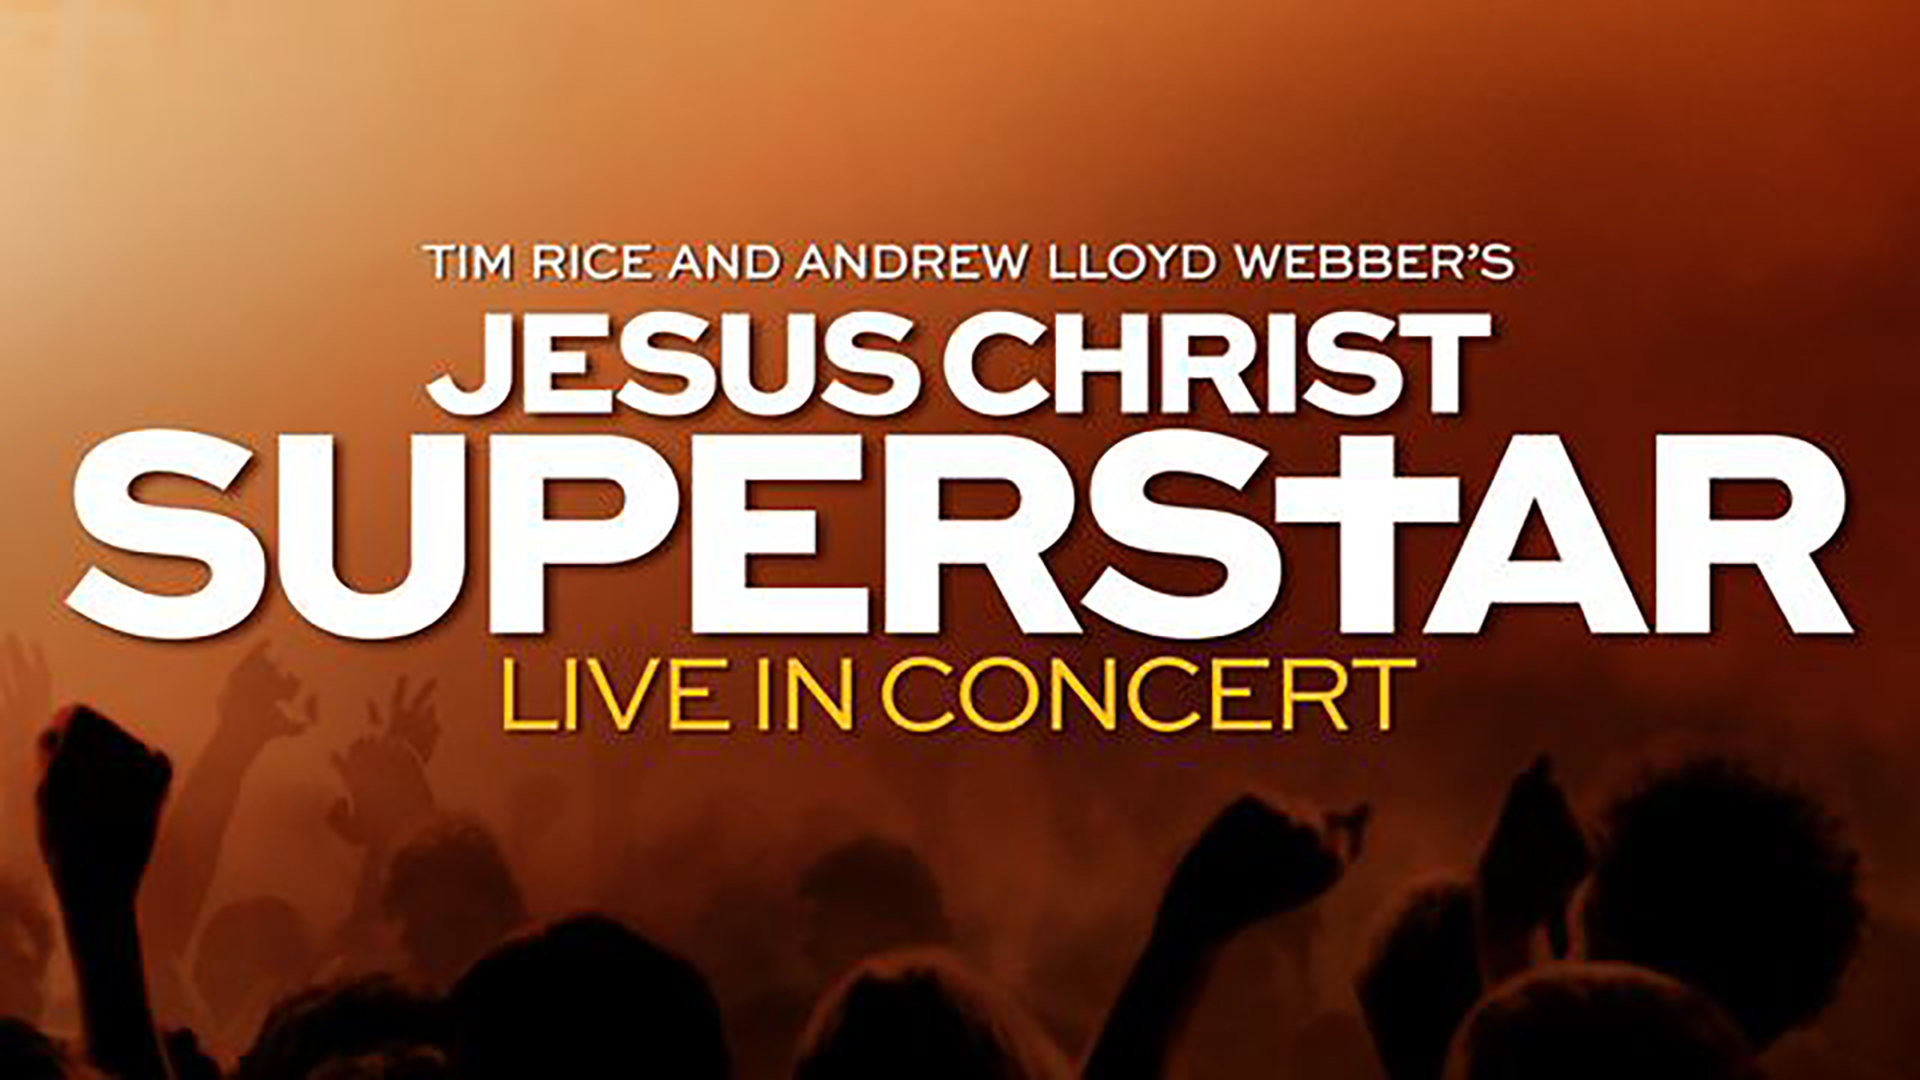 Jesus Christ Superstar to Air This Easter & More Stories Trending Now